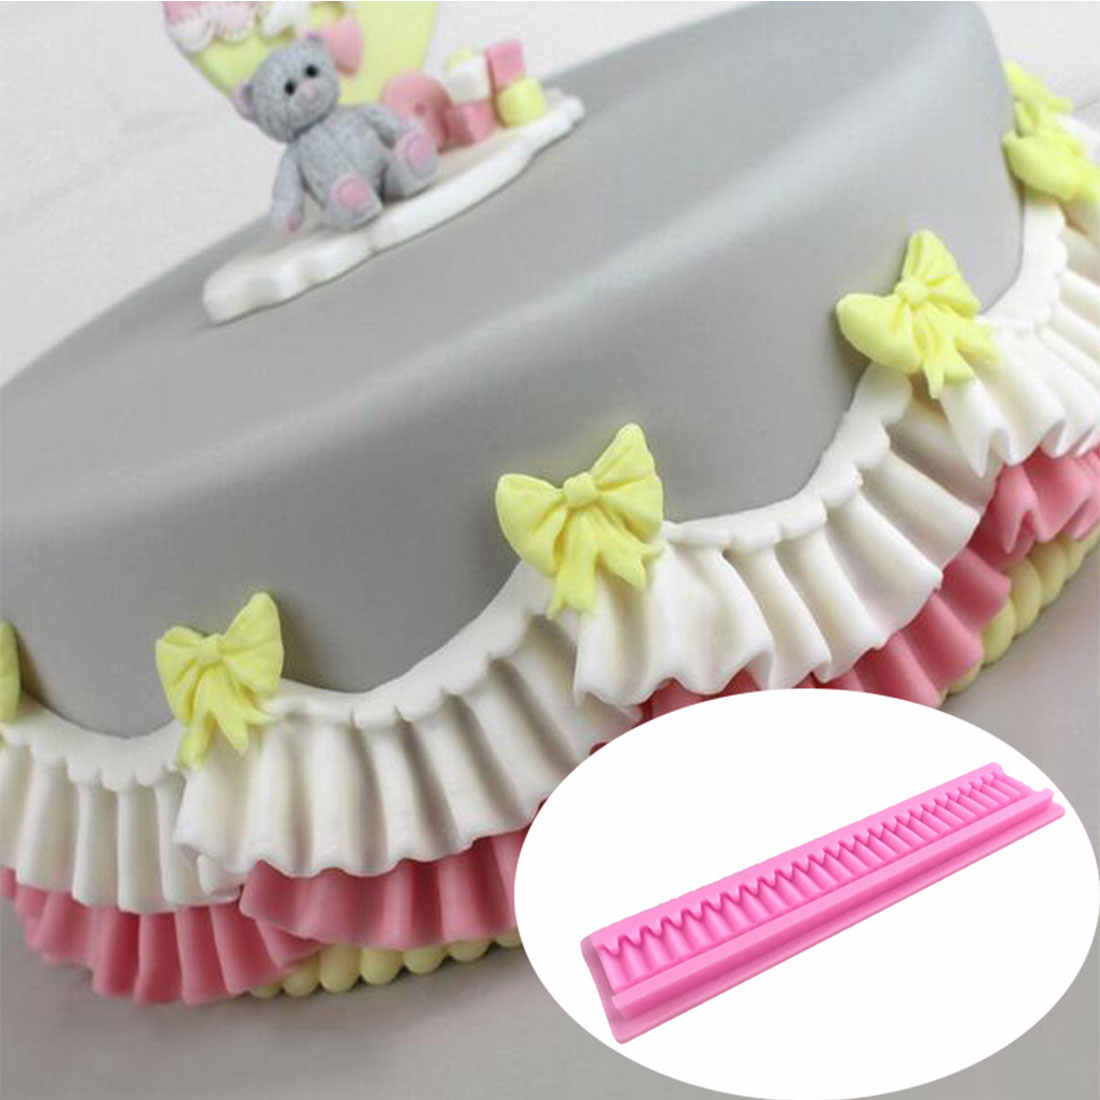 Practical Cake Folded Lace Border Decoration Mold Cake Side Decorating Stencils Fondant Cake Decorating Tools